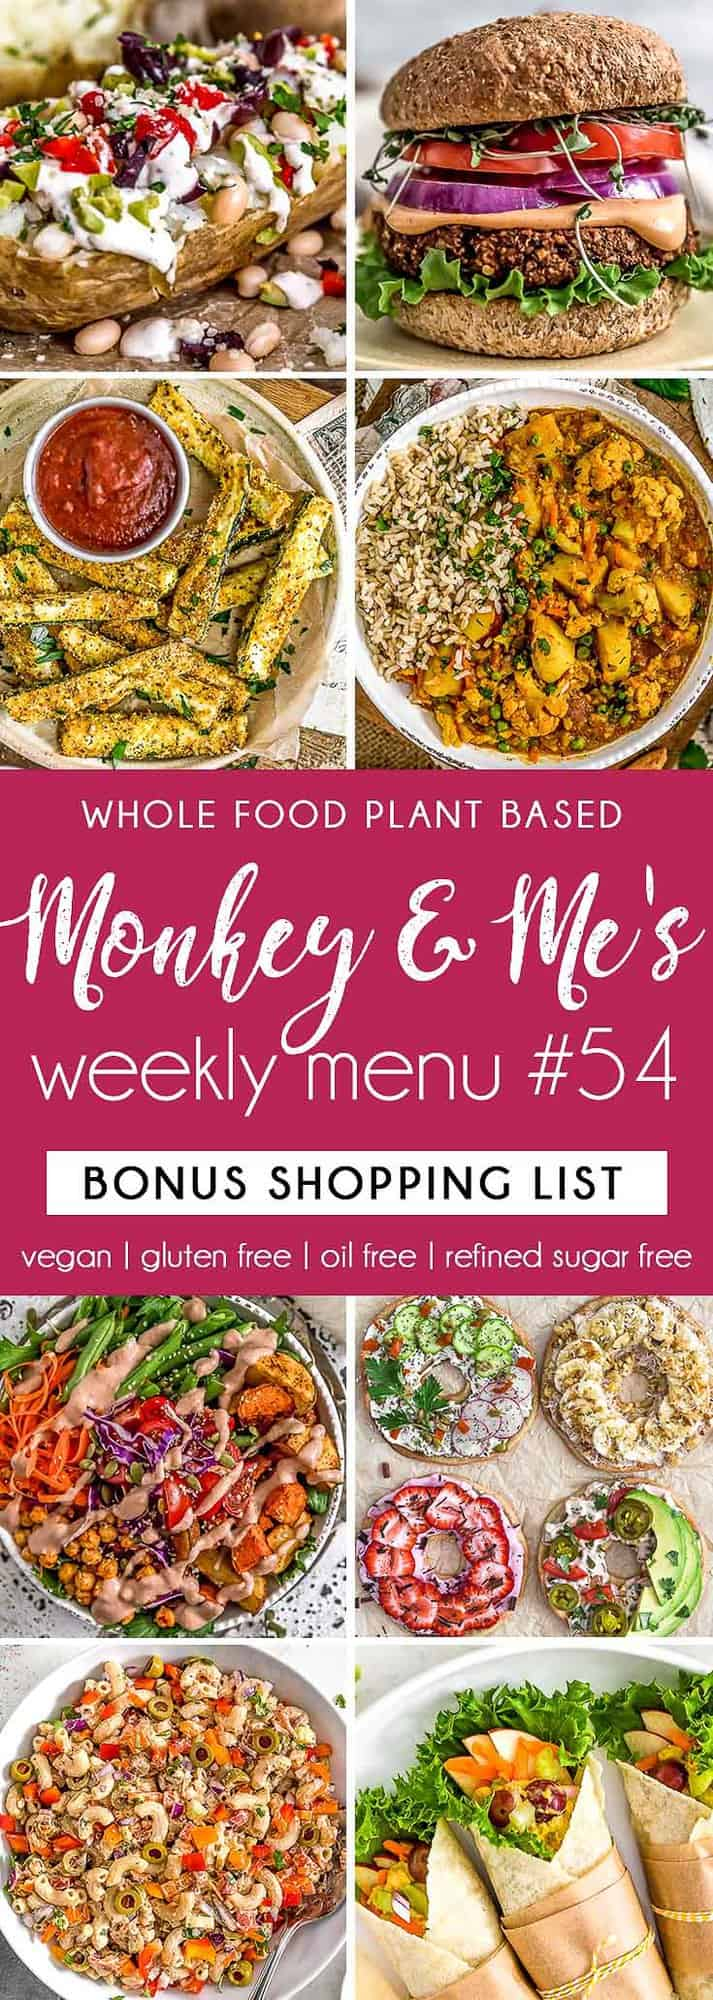 Monkey and Me's Menu 54 featuring 8 recipes